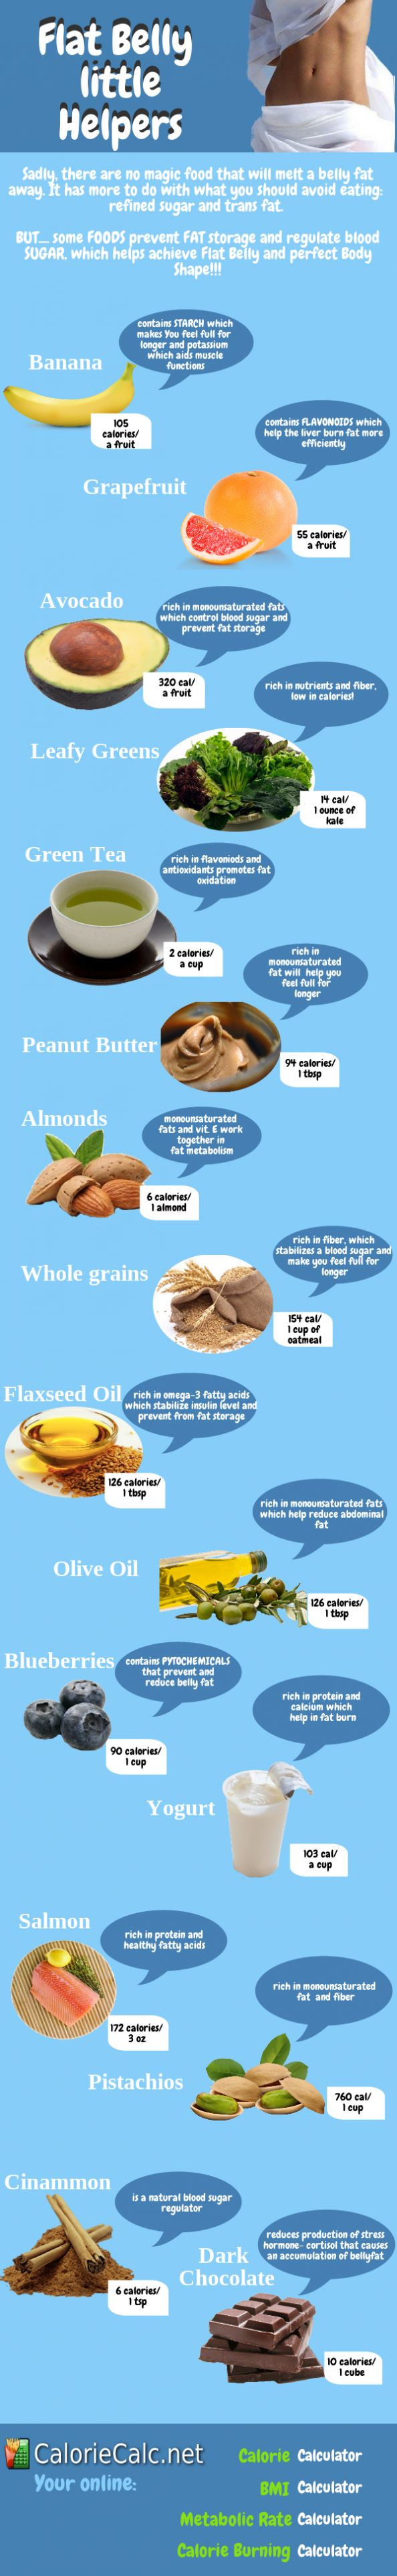 Flat Belly little helpers #Infographic - lol - I eat a lot of these my belly isn't 'flat'